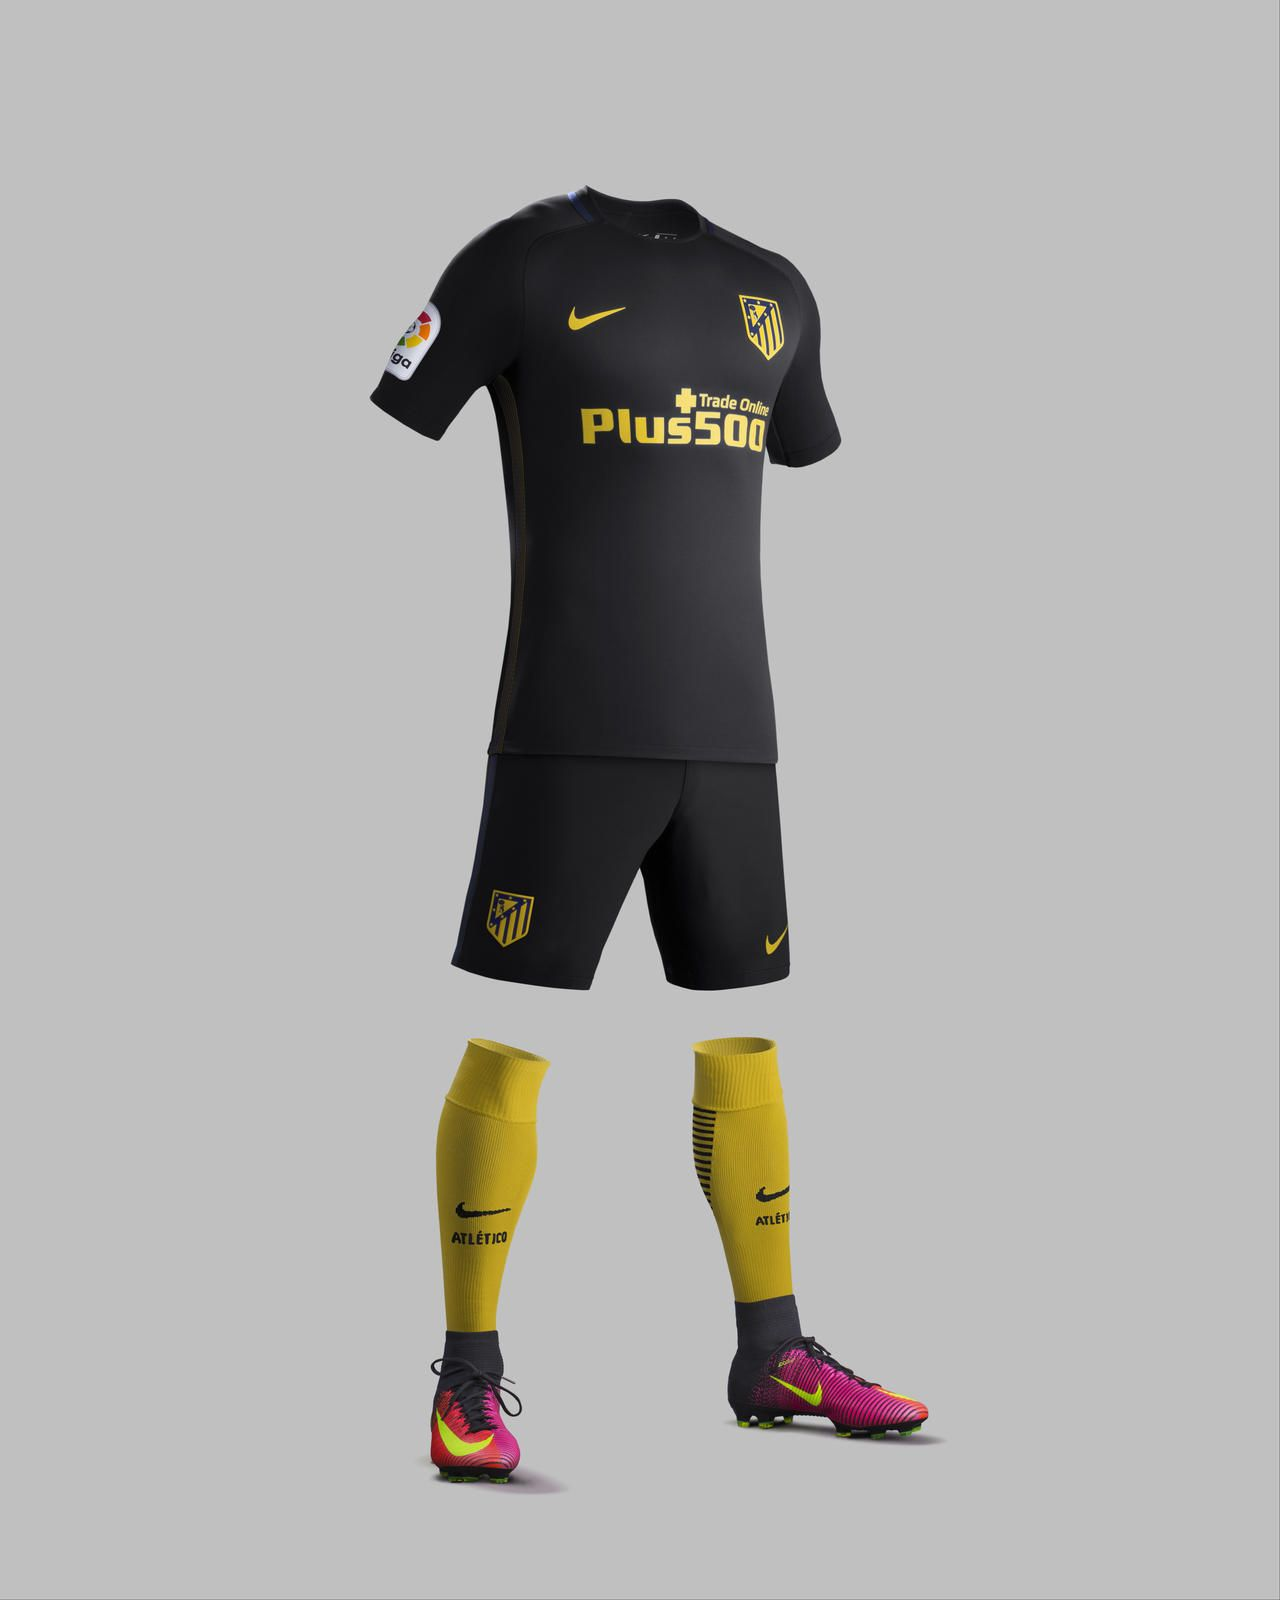 3d7a7a98b3 Camisas do Atlético de Madrid 2016-2017 Nike Reserva kit